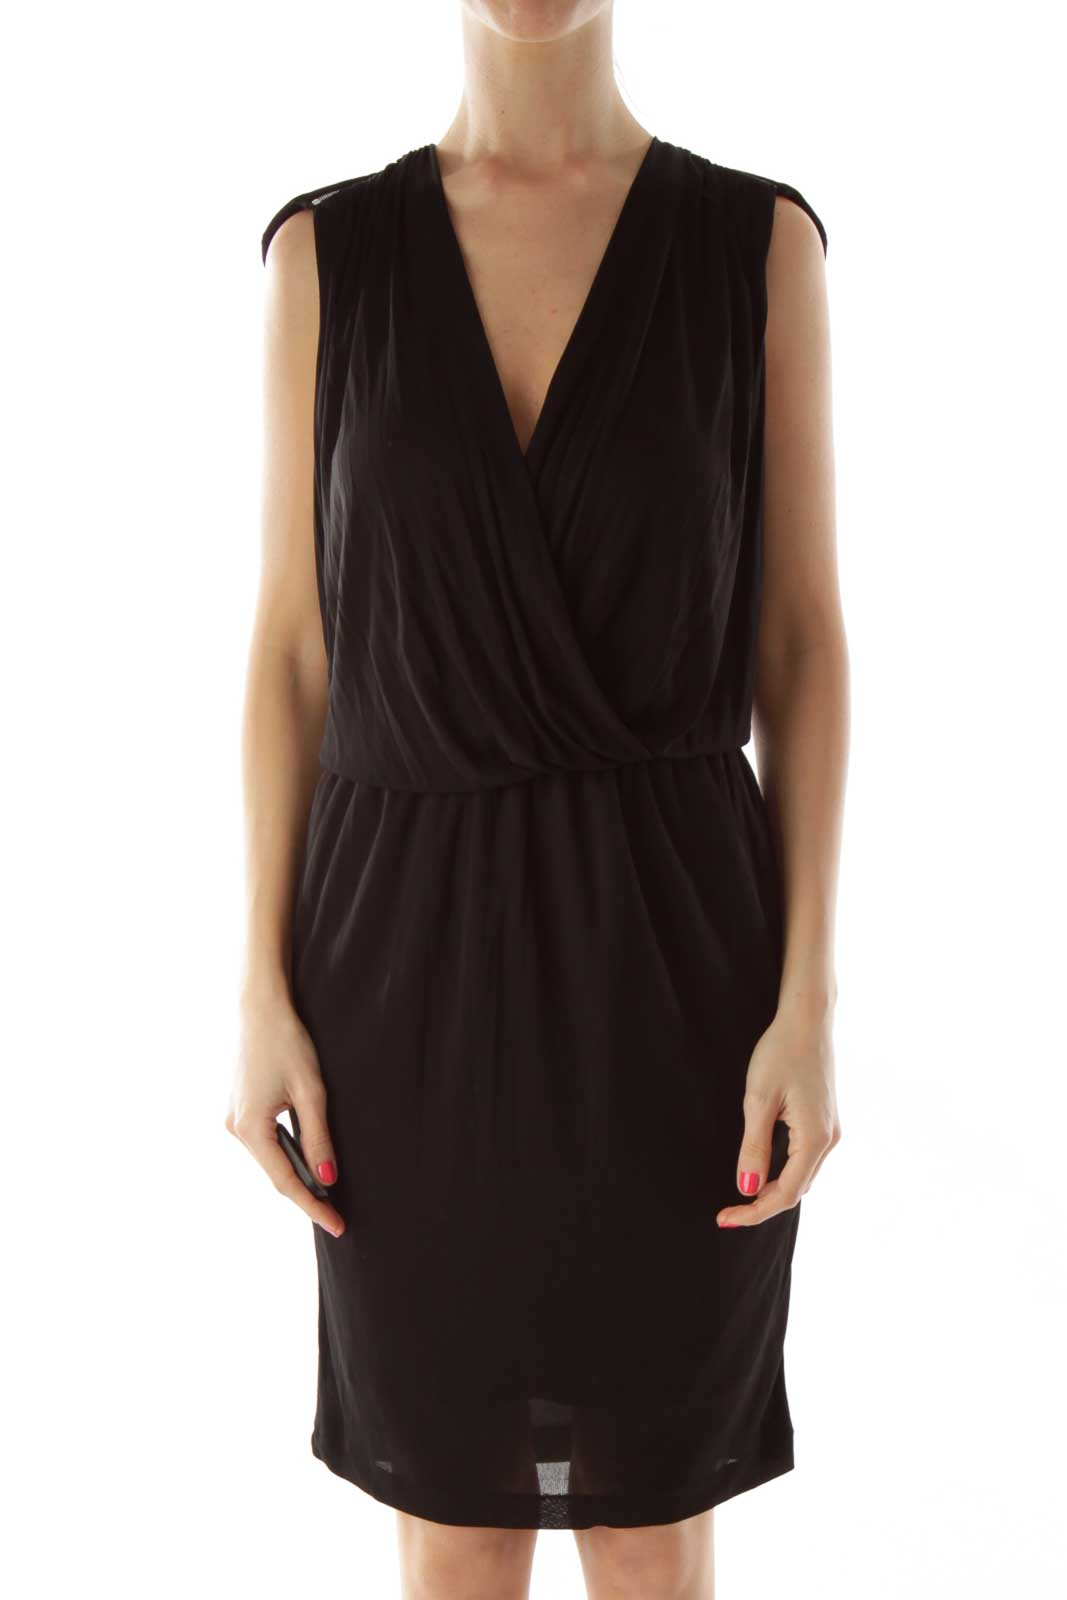 Black Zippered Cocktail Dress Front